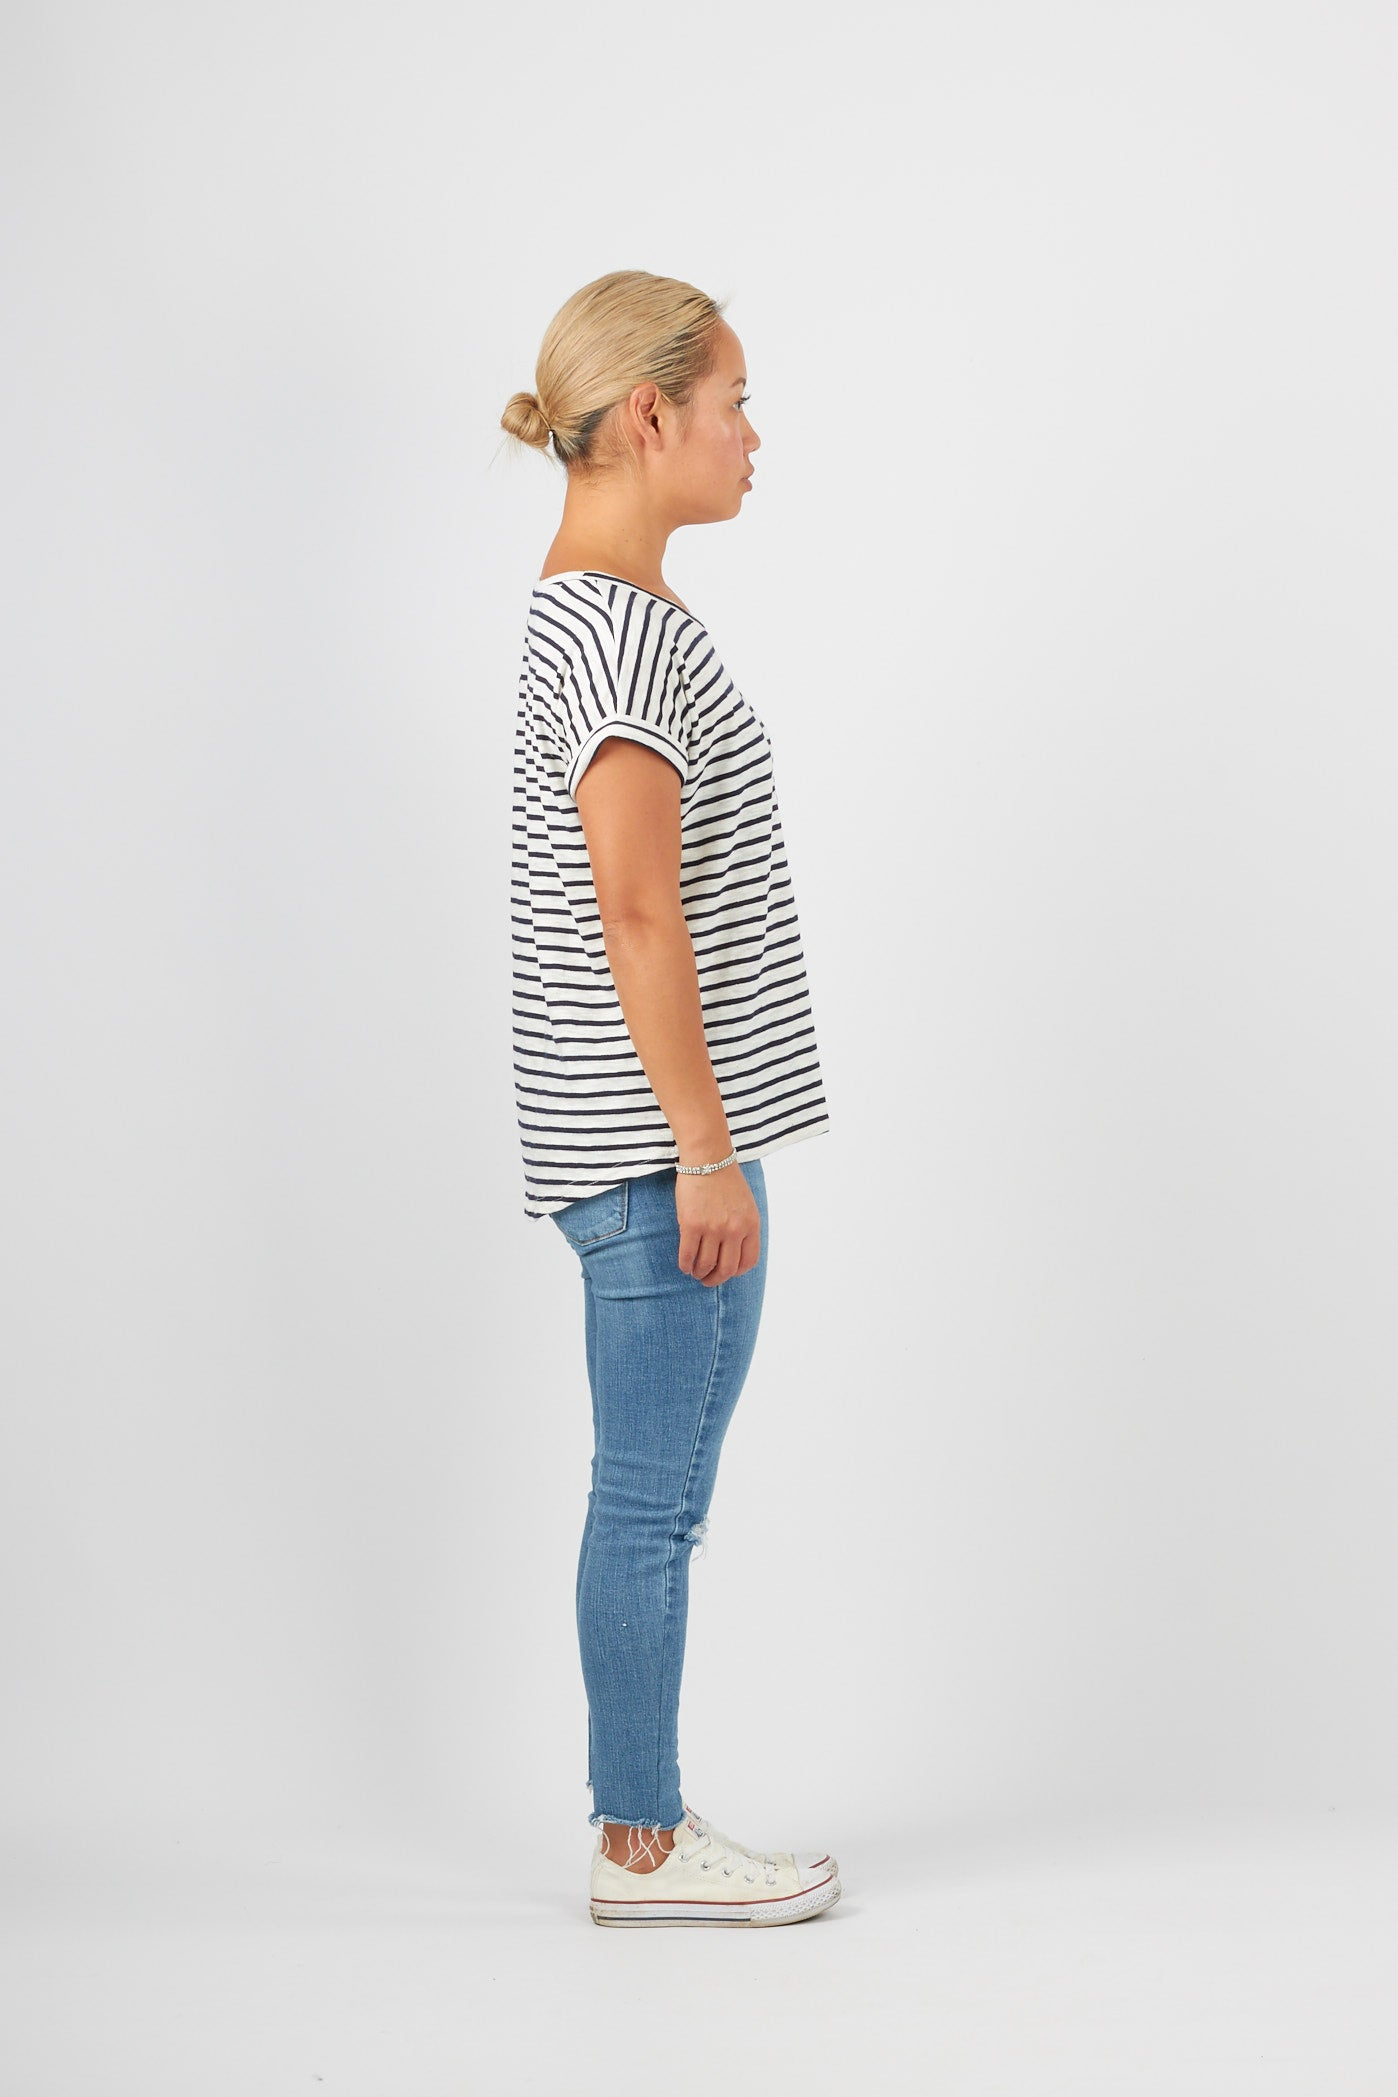 Striped navy and white cotton crew neck tee shirt